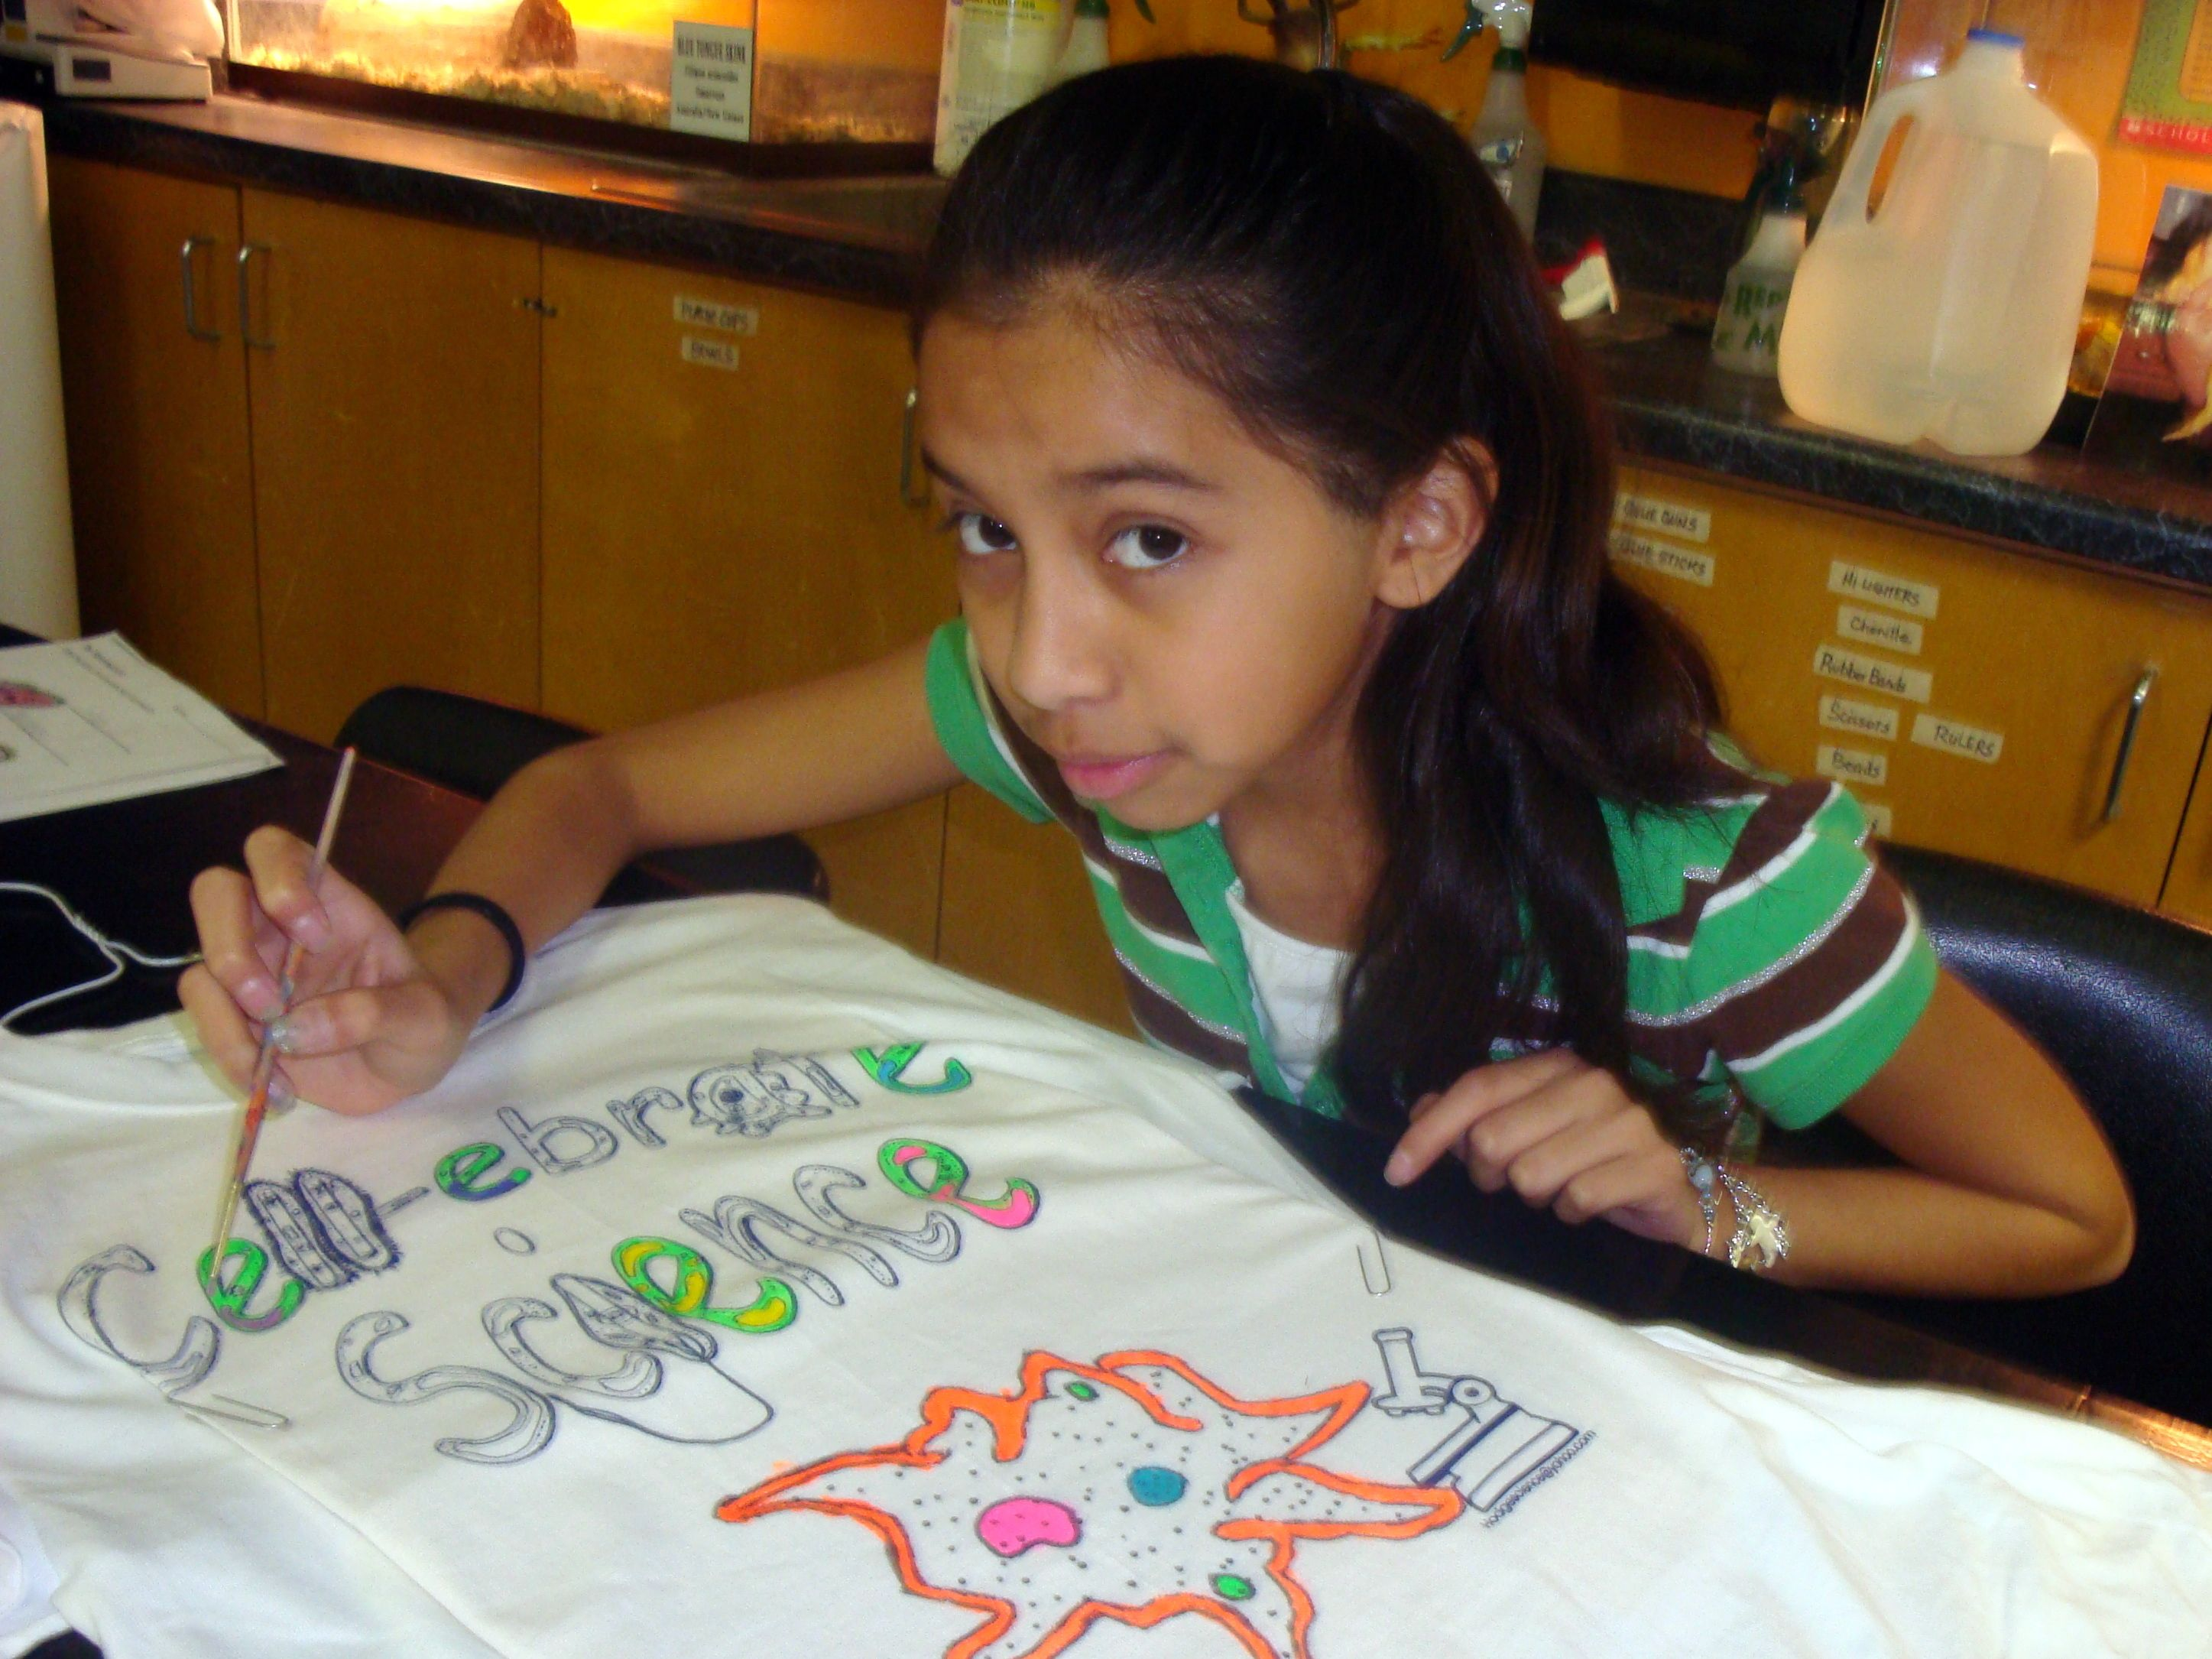 Students Paint Cell Models On This Cool Ebrate Science Shirts Mcat Course Image Archive Prokaryotic Vs Eukaryotic Structure Inexpensive And The Will Wear After They Are Created